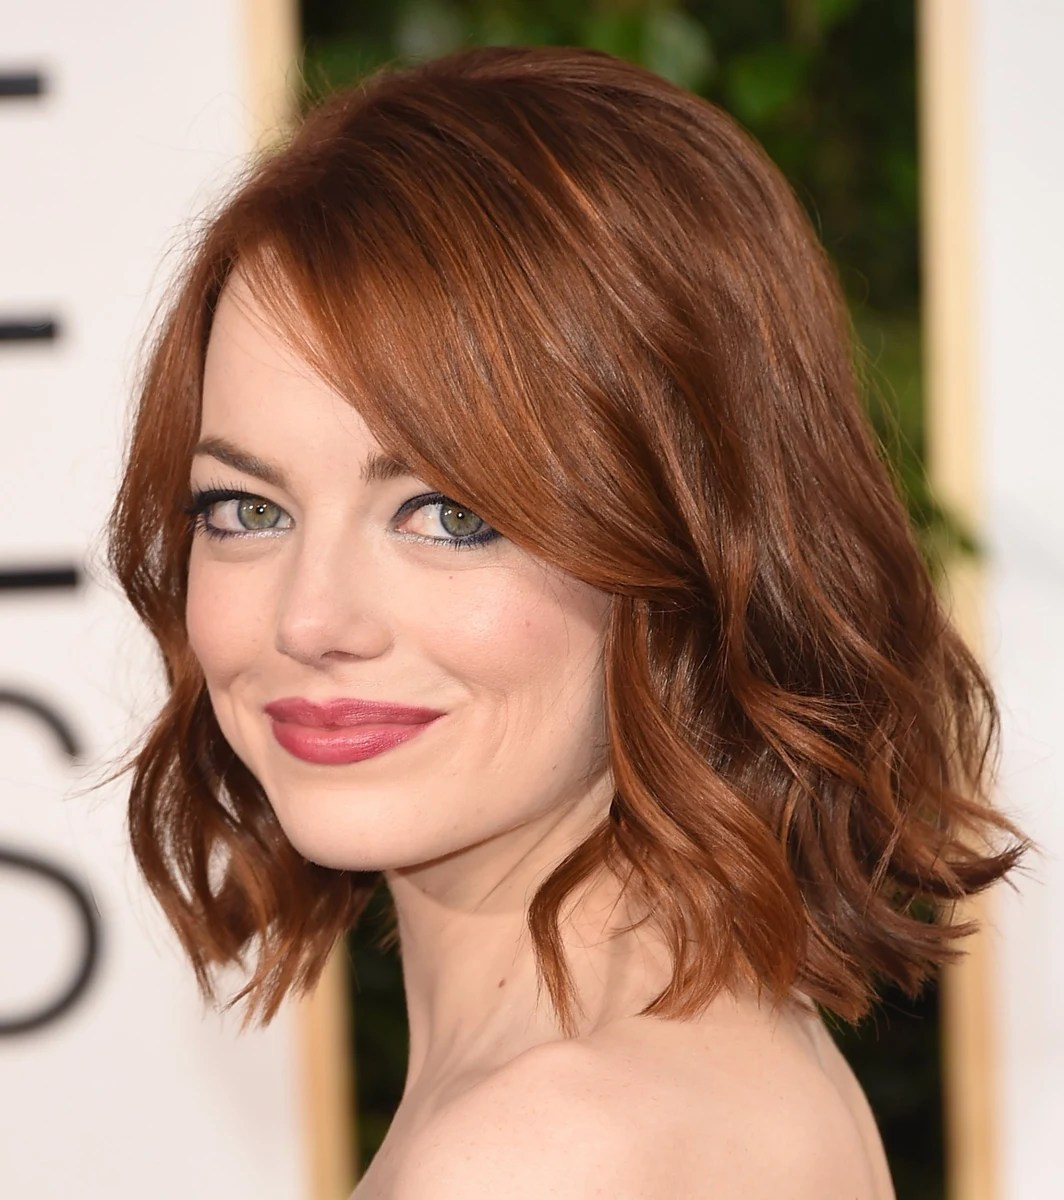 Short hairstyles for 2016 Celebrityinspired modern haircuts  TODAYcom